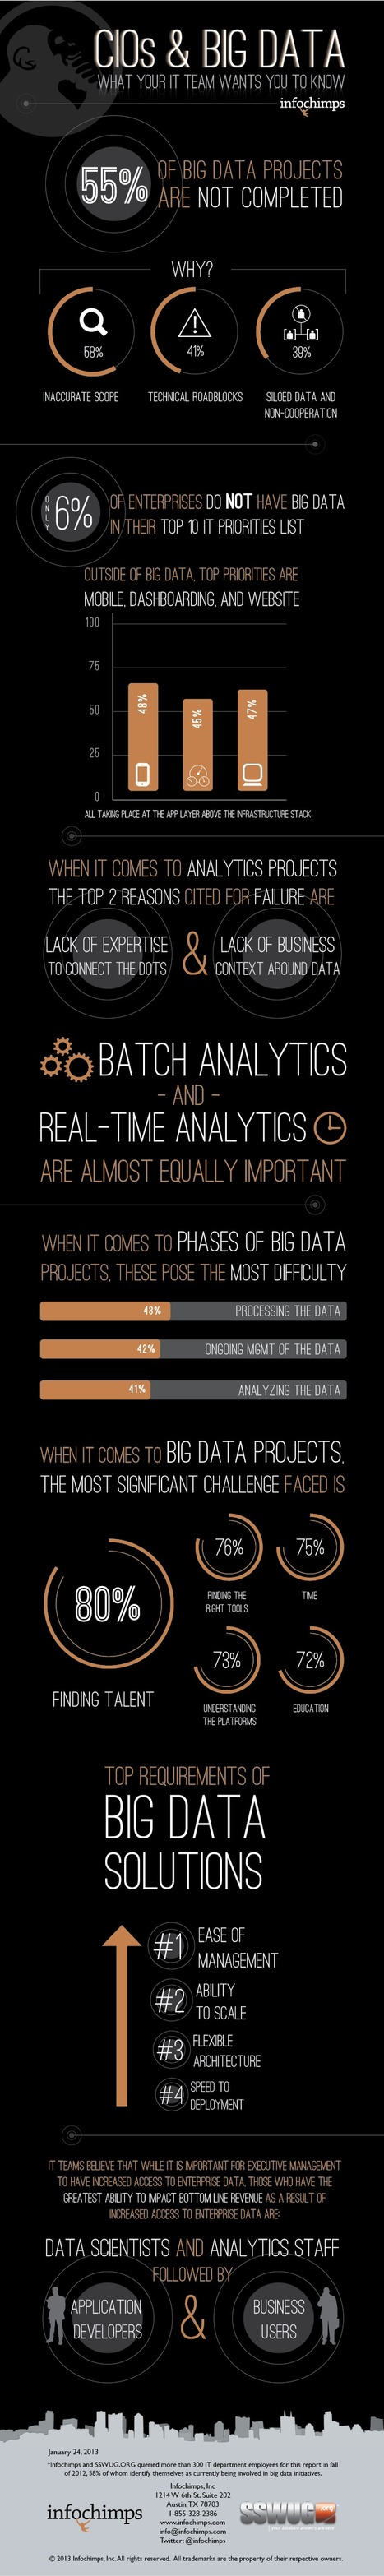 INFOGRAPHIC: CIOs & BIG DATA: What Your IT Team Wants You To Know | CloudTweaks | Content Curation: Emerging Career | Scoop.it